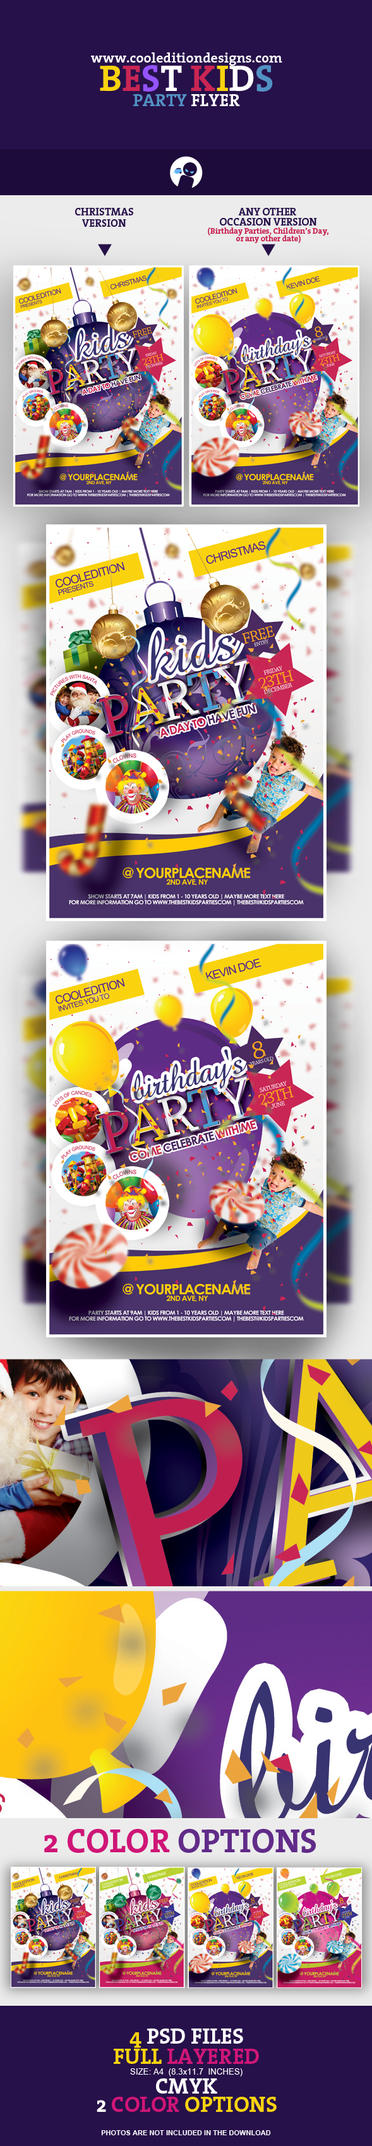 Best Kids Party Flyer Template by cooledition